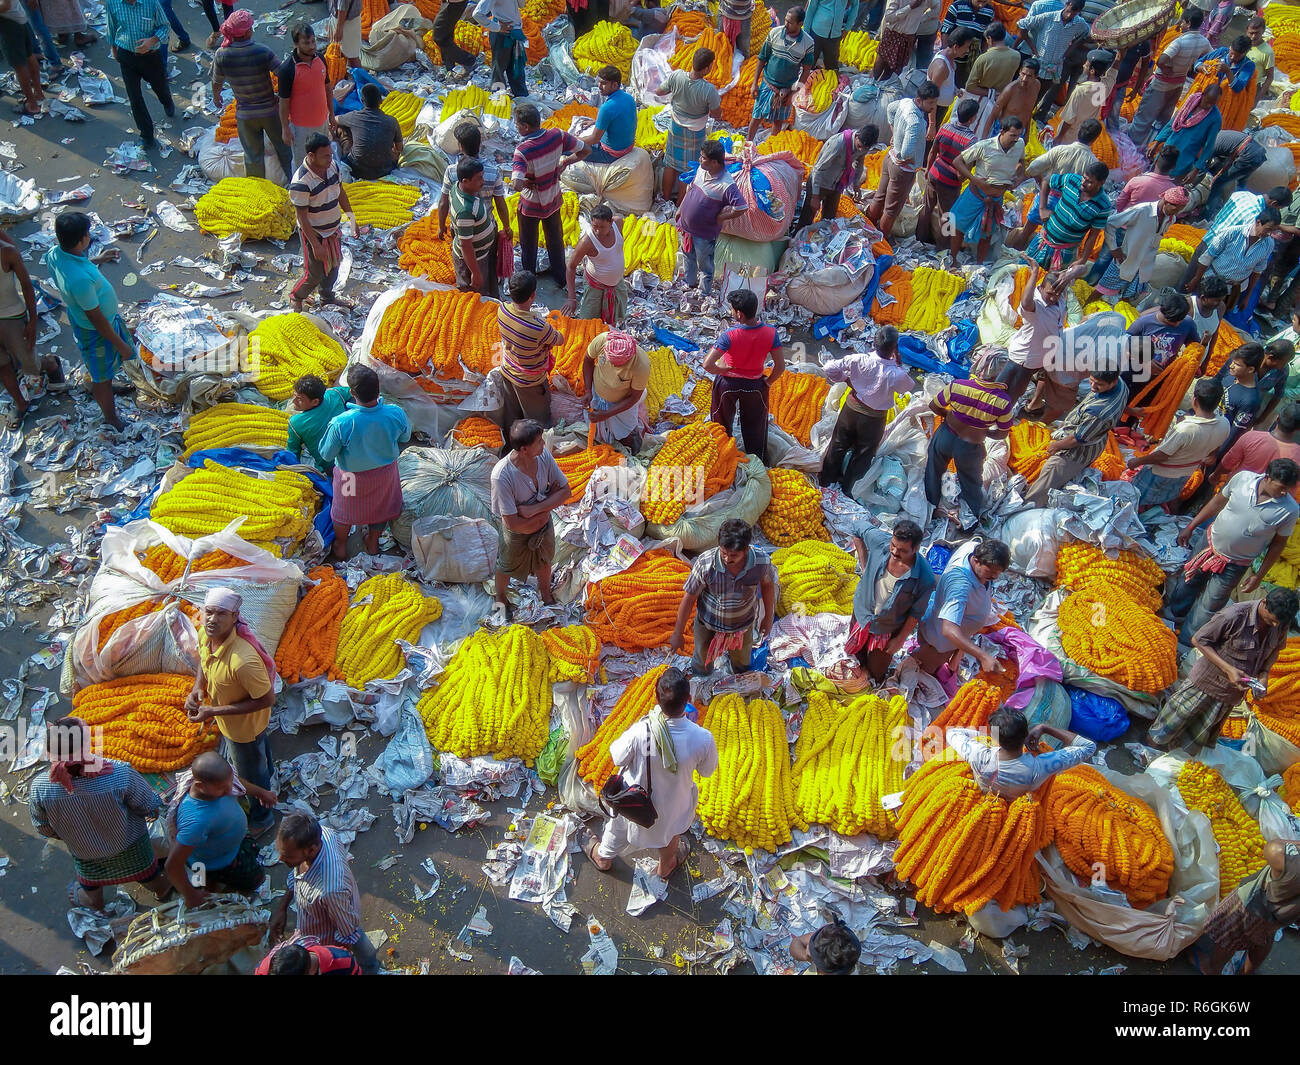 CALCUTTA, KOLKATA, INDIA - NOVEMBER 04, 2018: People buying and selling flowers and garlands at the flower market near mullick ghat on November 04, 20 - Stock Image